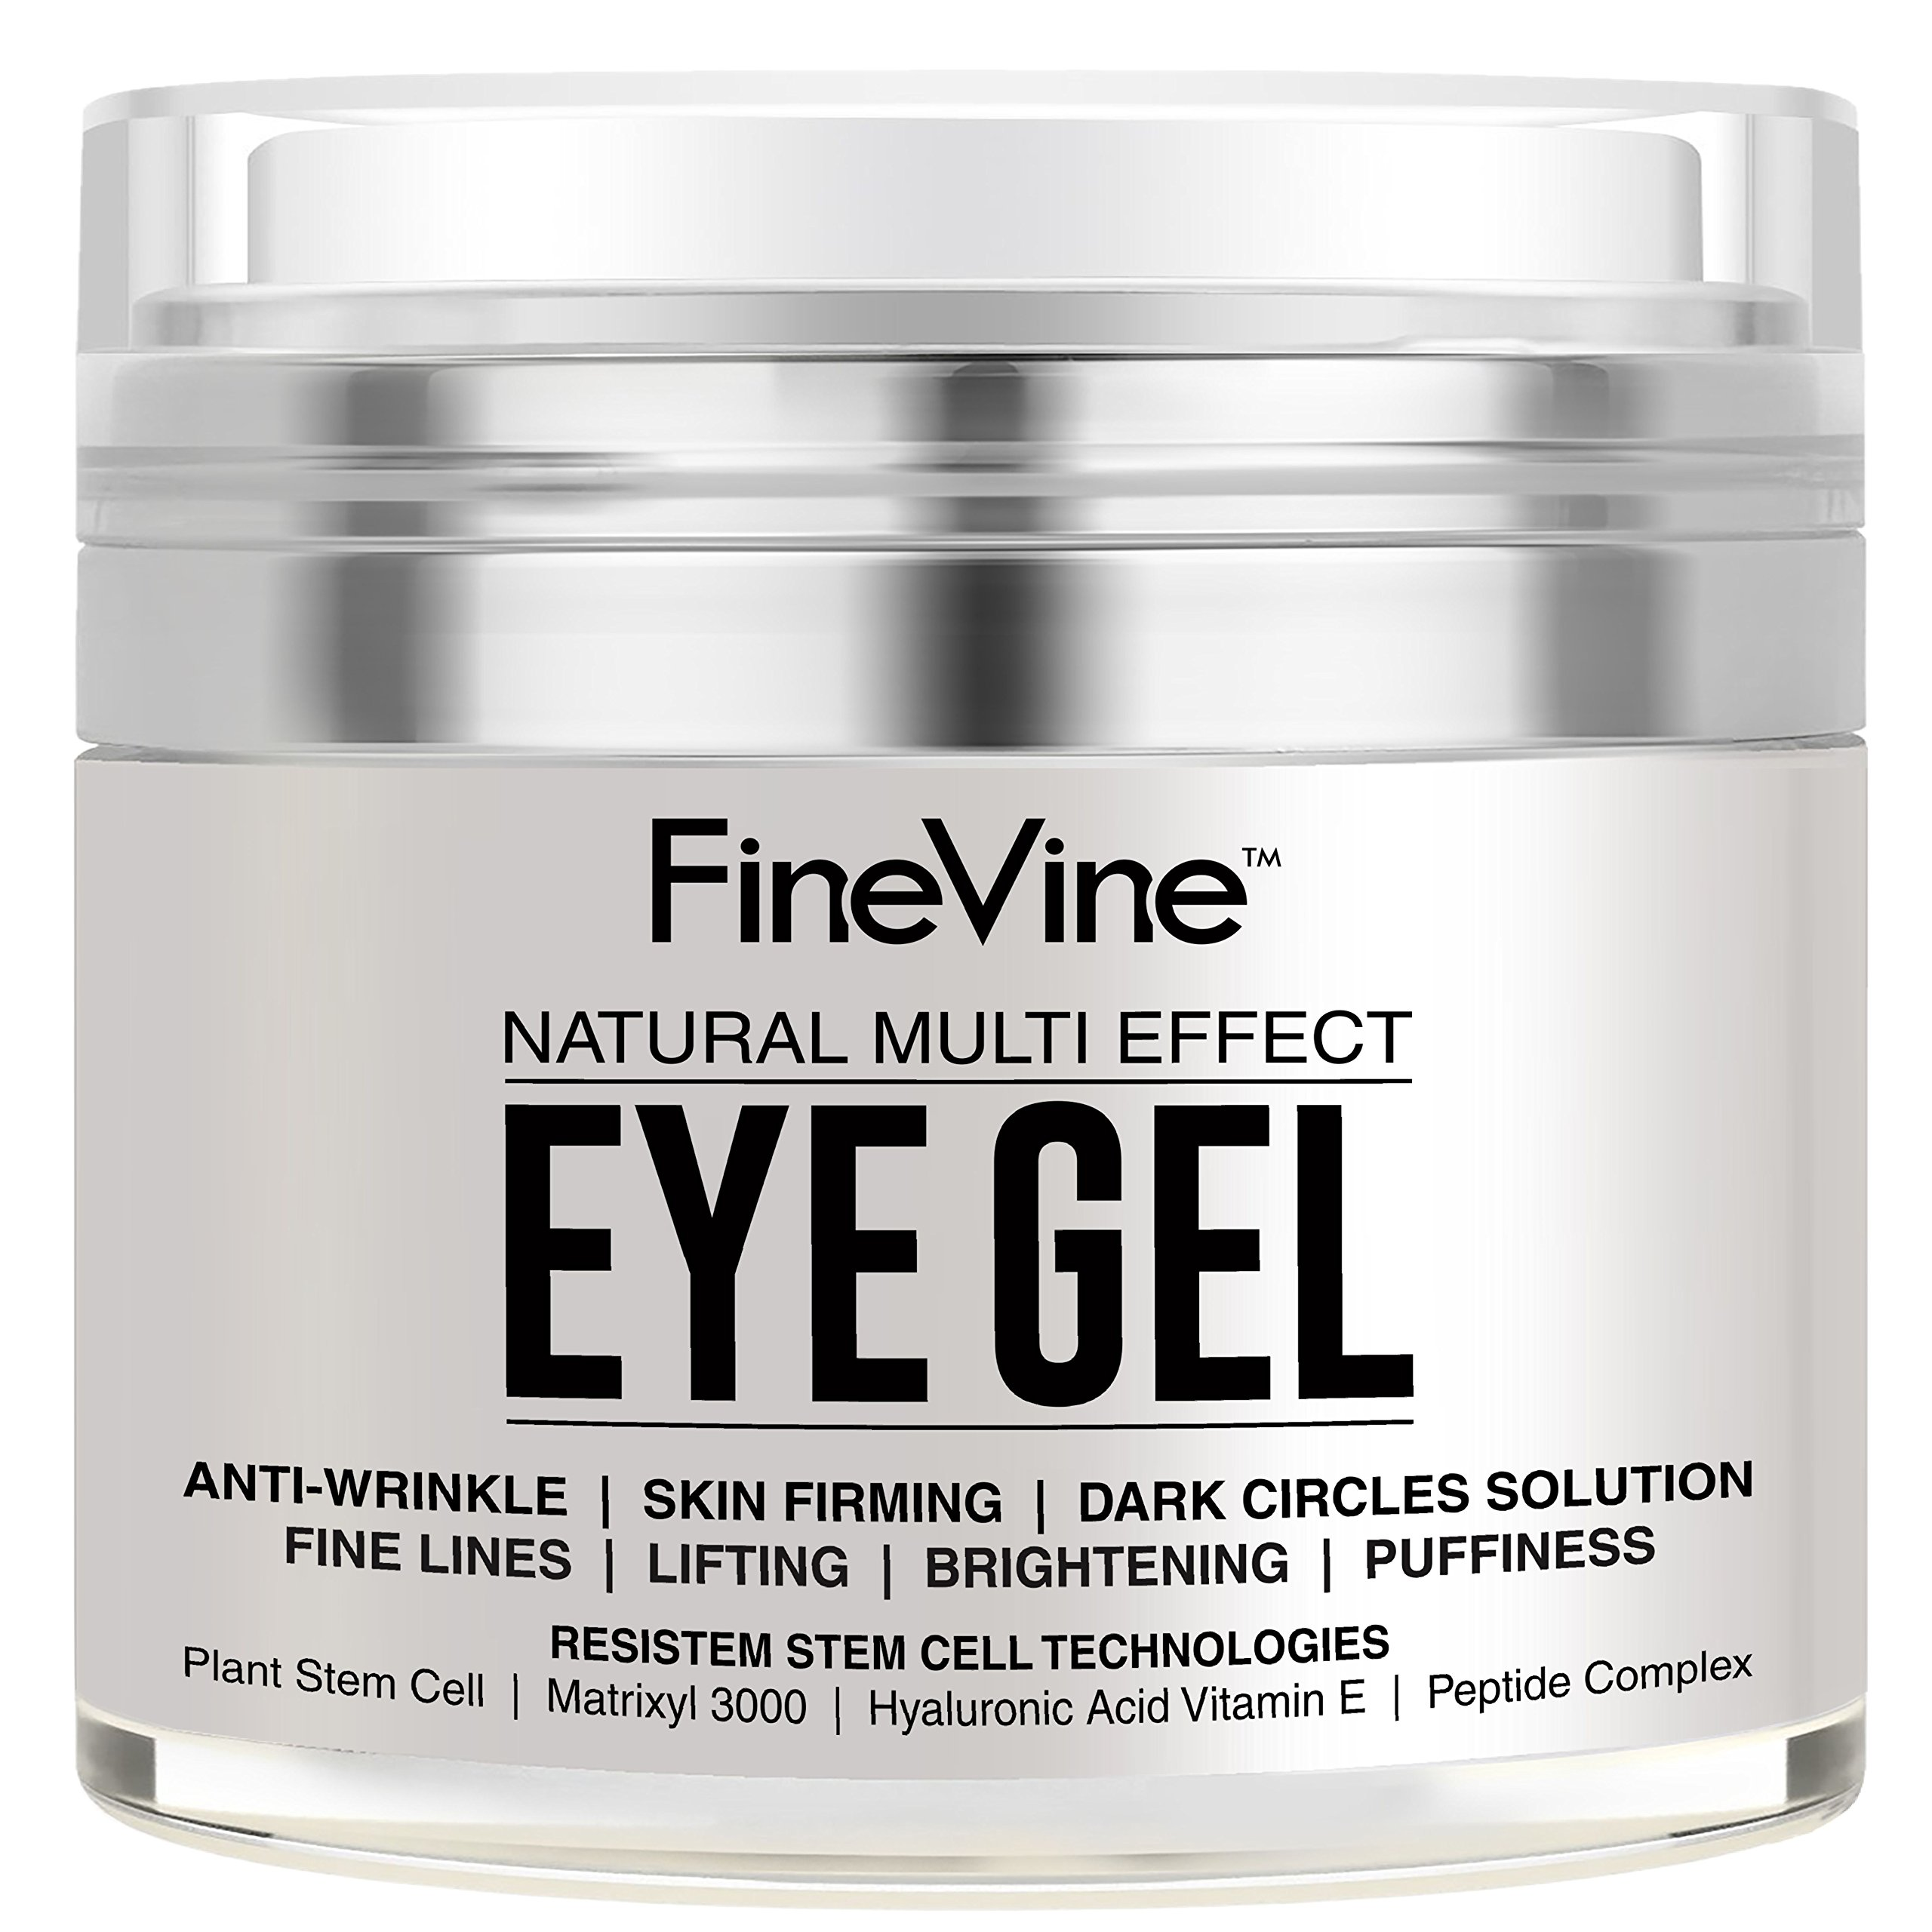 Anti Aging Eye Gel - Made in USA - for Dark Circles, Puffiness, Wrinkles, Bags, Skin Firming, Fine Lines and crows feet - The Best Natural Eye Gel for Under and Around Eyes. by FineVine